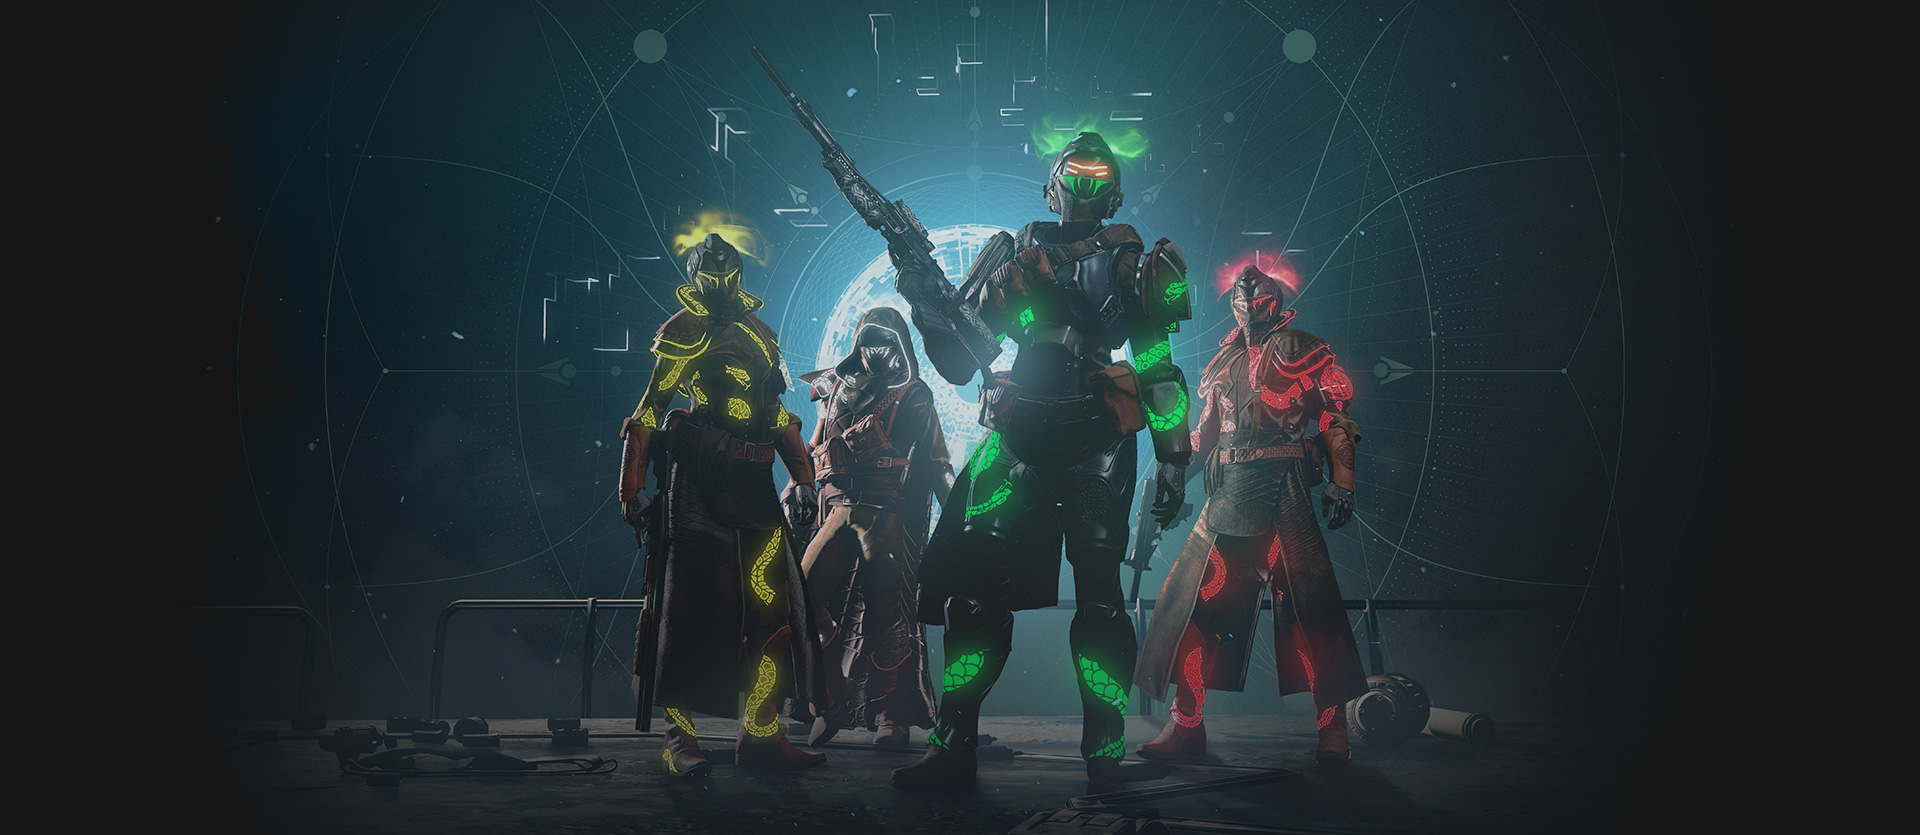 Destiny 2: Season of the Drifter - start time, Gambit Prime